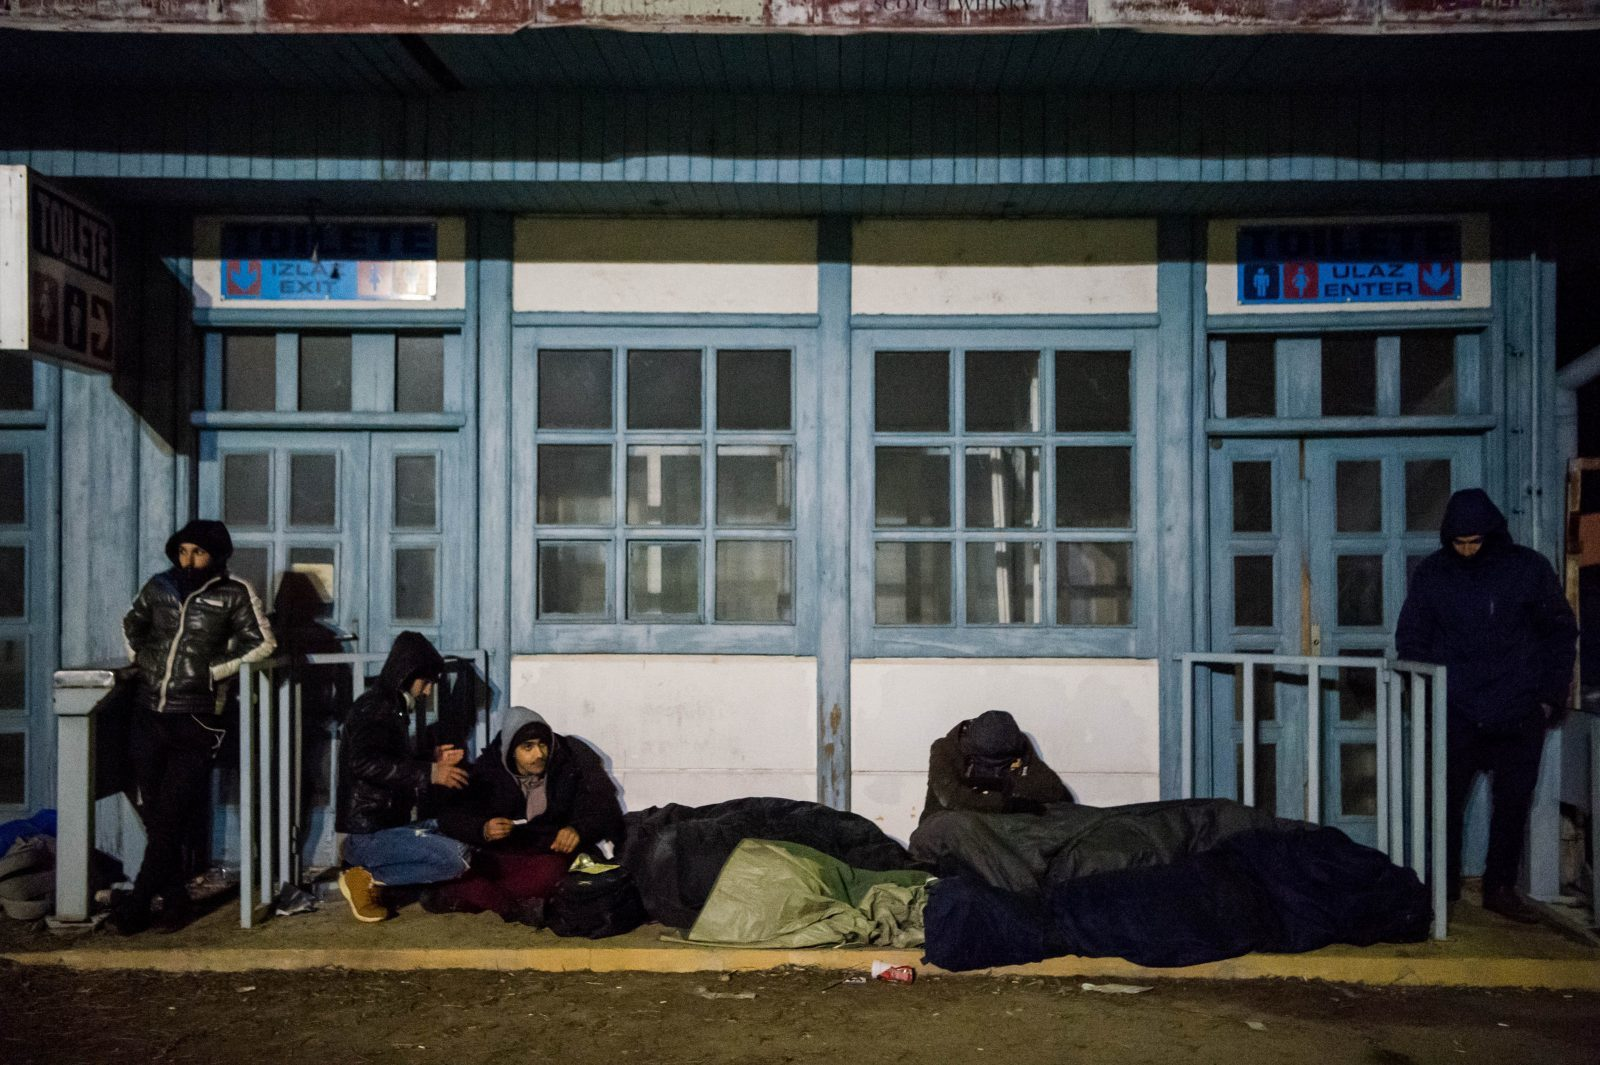 A group of migrants rest at the Serbian village of Kelebia, bordering Hungary (EPA-EFE/Zoltan Balogh Hungary Out/ Balkan Insight - https://balkaninsight.com/2020/04/09/movement-ban-worsens-migrants-plight-in-serbia-bosnia/